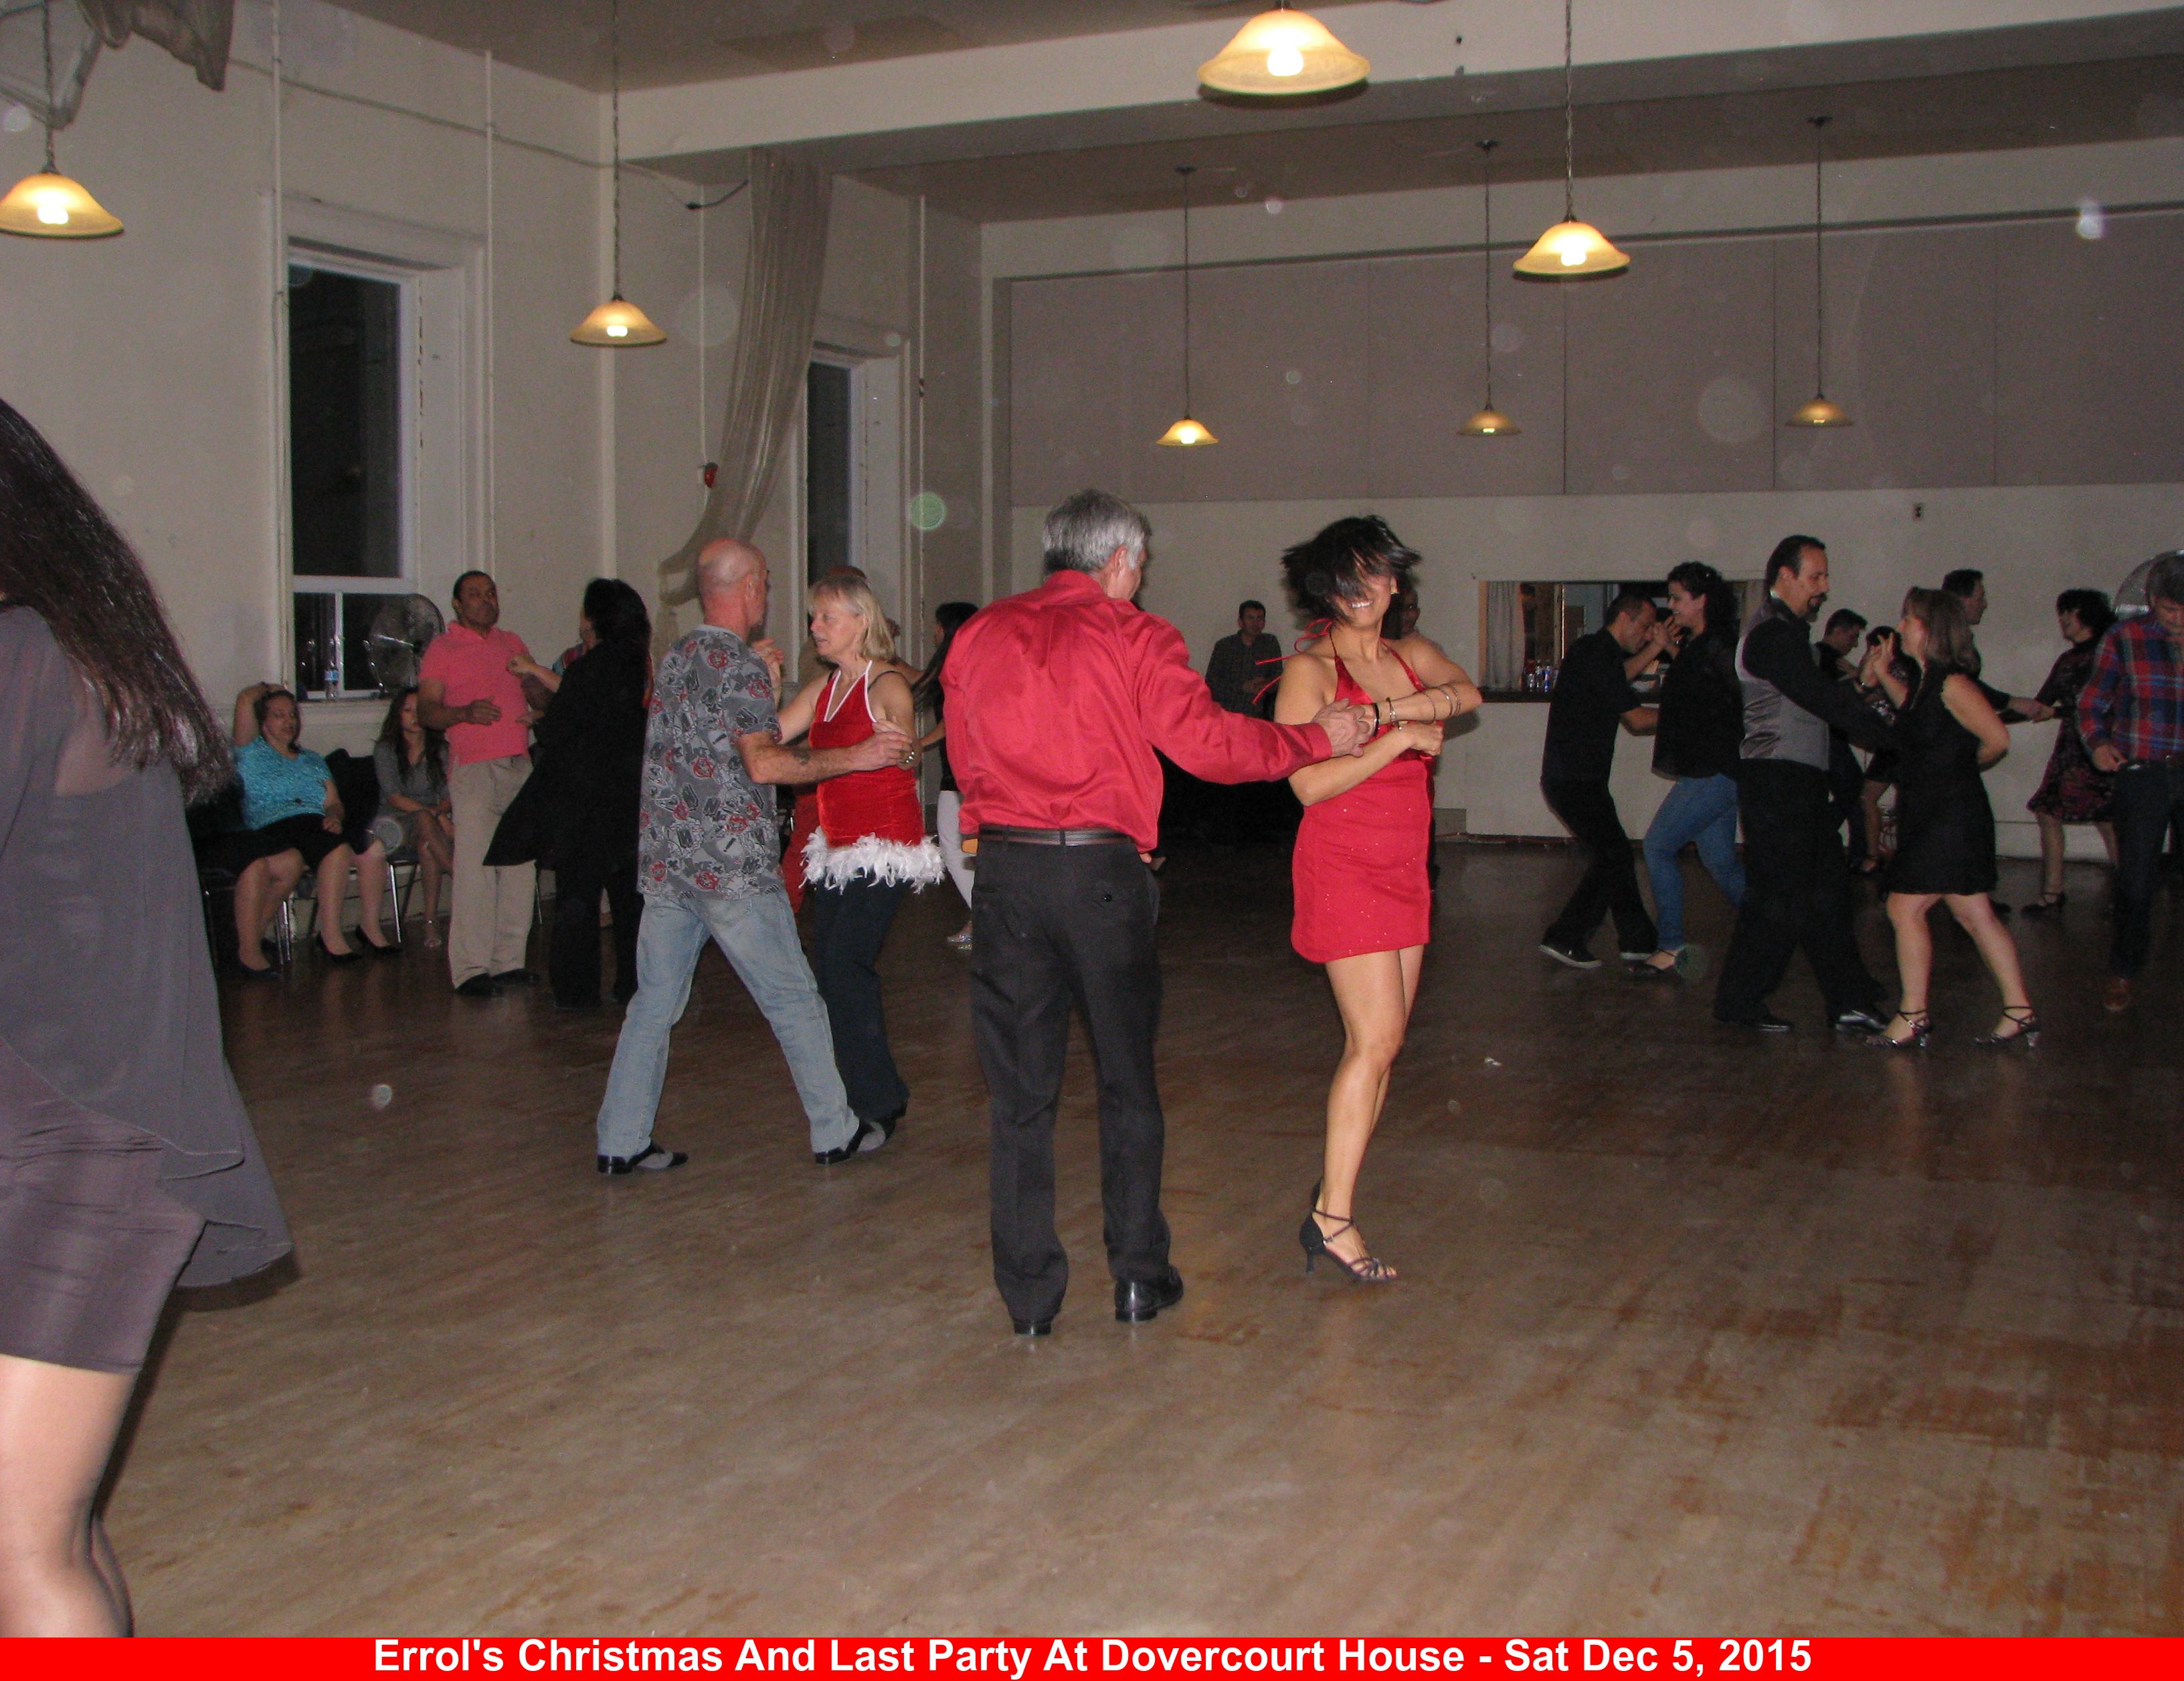 Errol's Christmas And Last Party At Dovercourt House